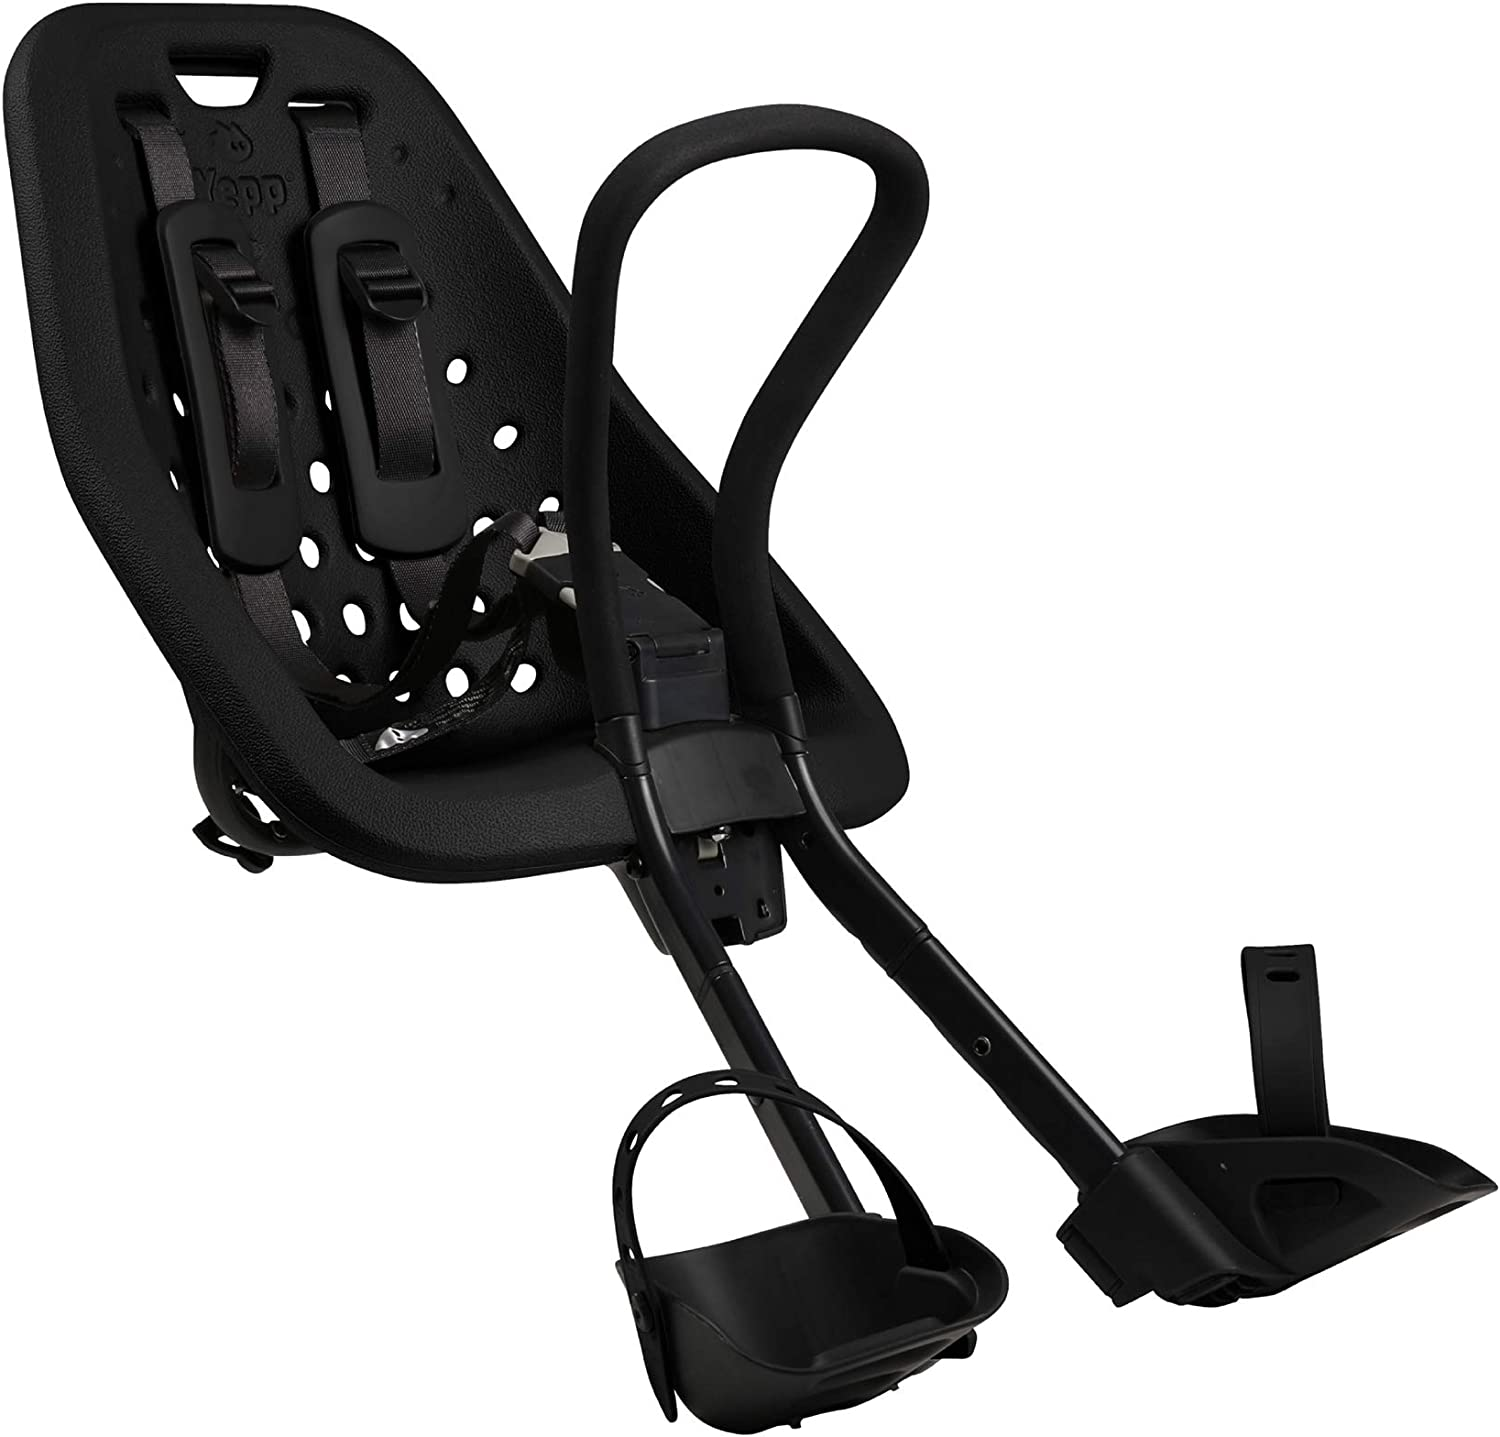 Top 14 Best Kid Seat For Bikes (2020 Reviews & Buying Guide) 7